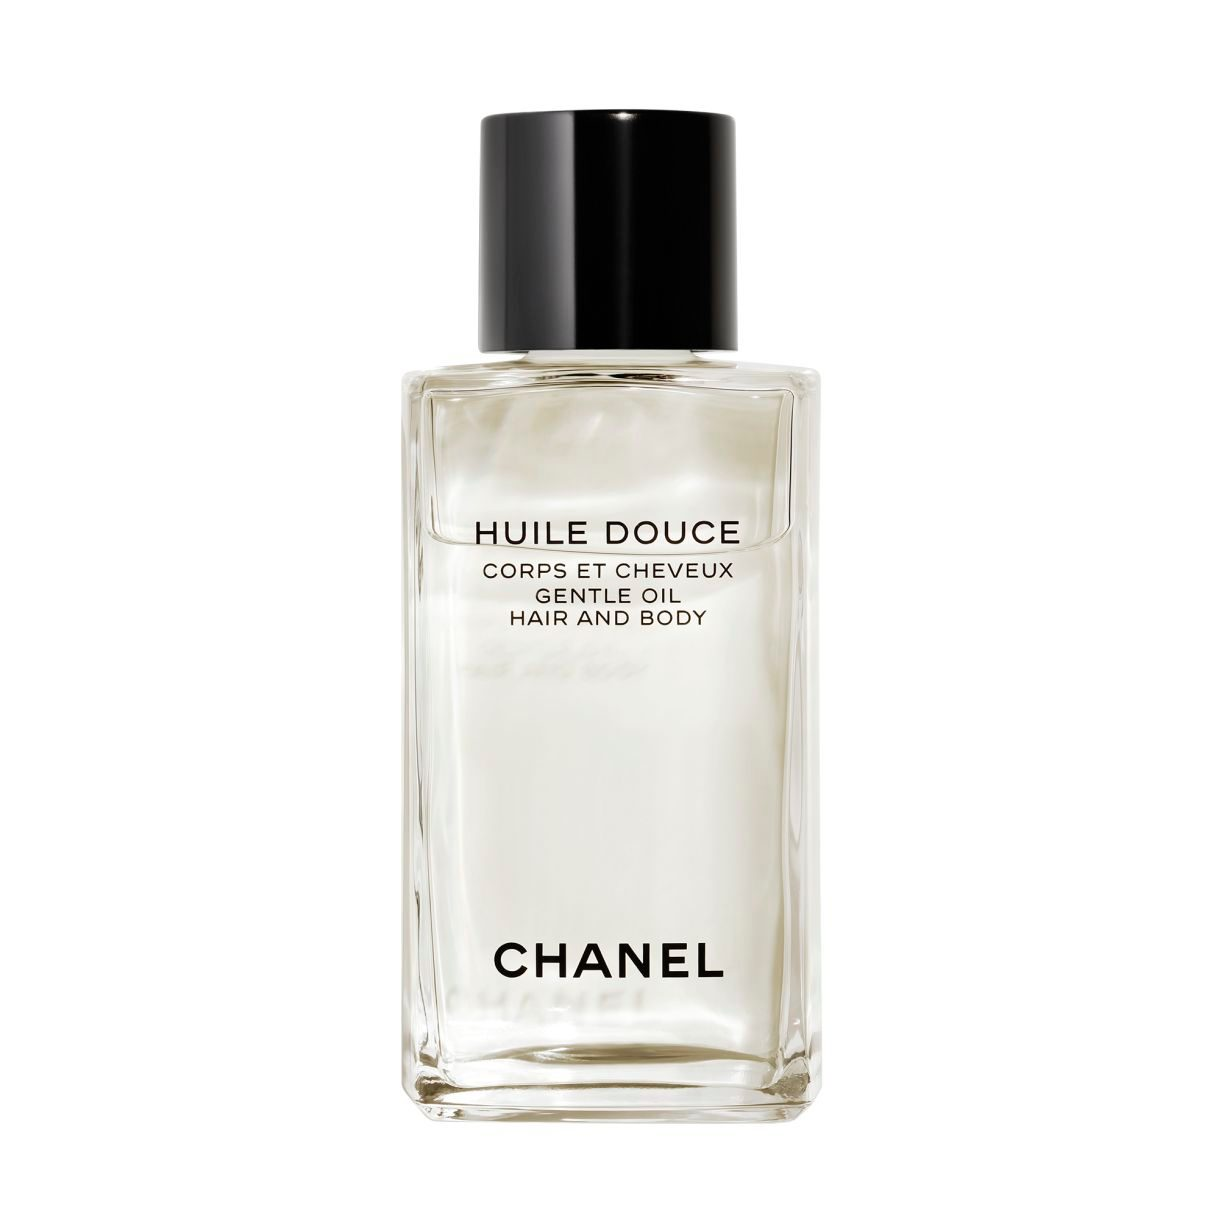 GENTLE OIL LES EXCLUSIFS DE CHANEL - GENTLE OIL HAIR AND BODY 250ml